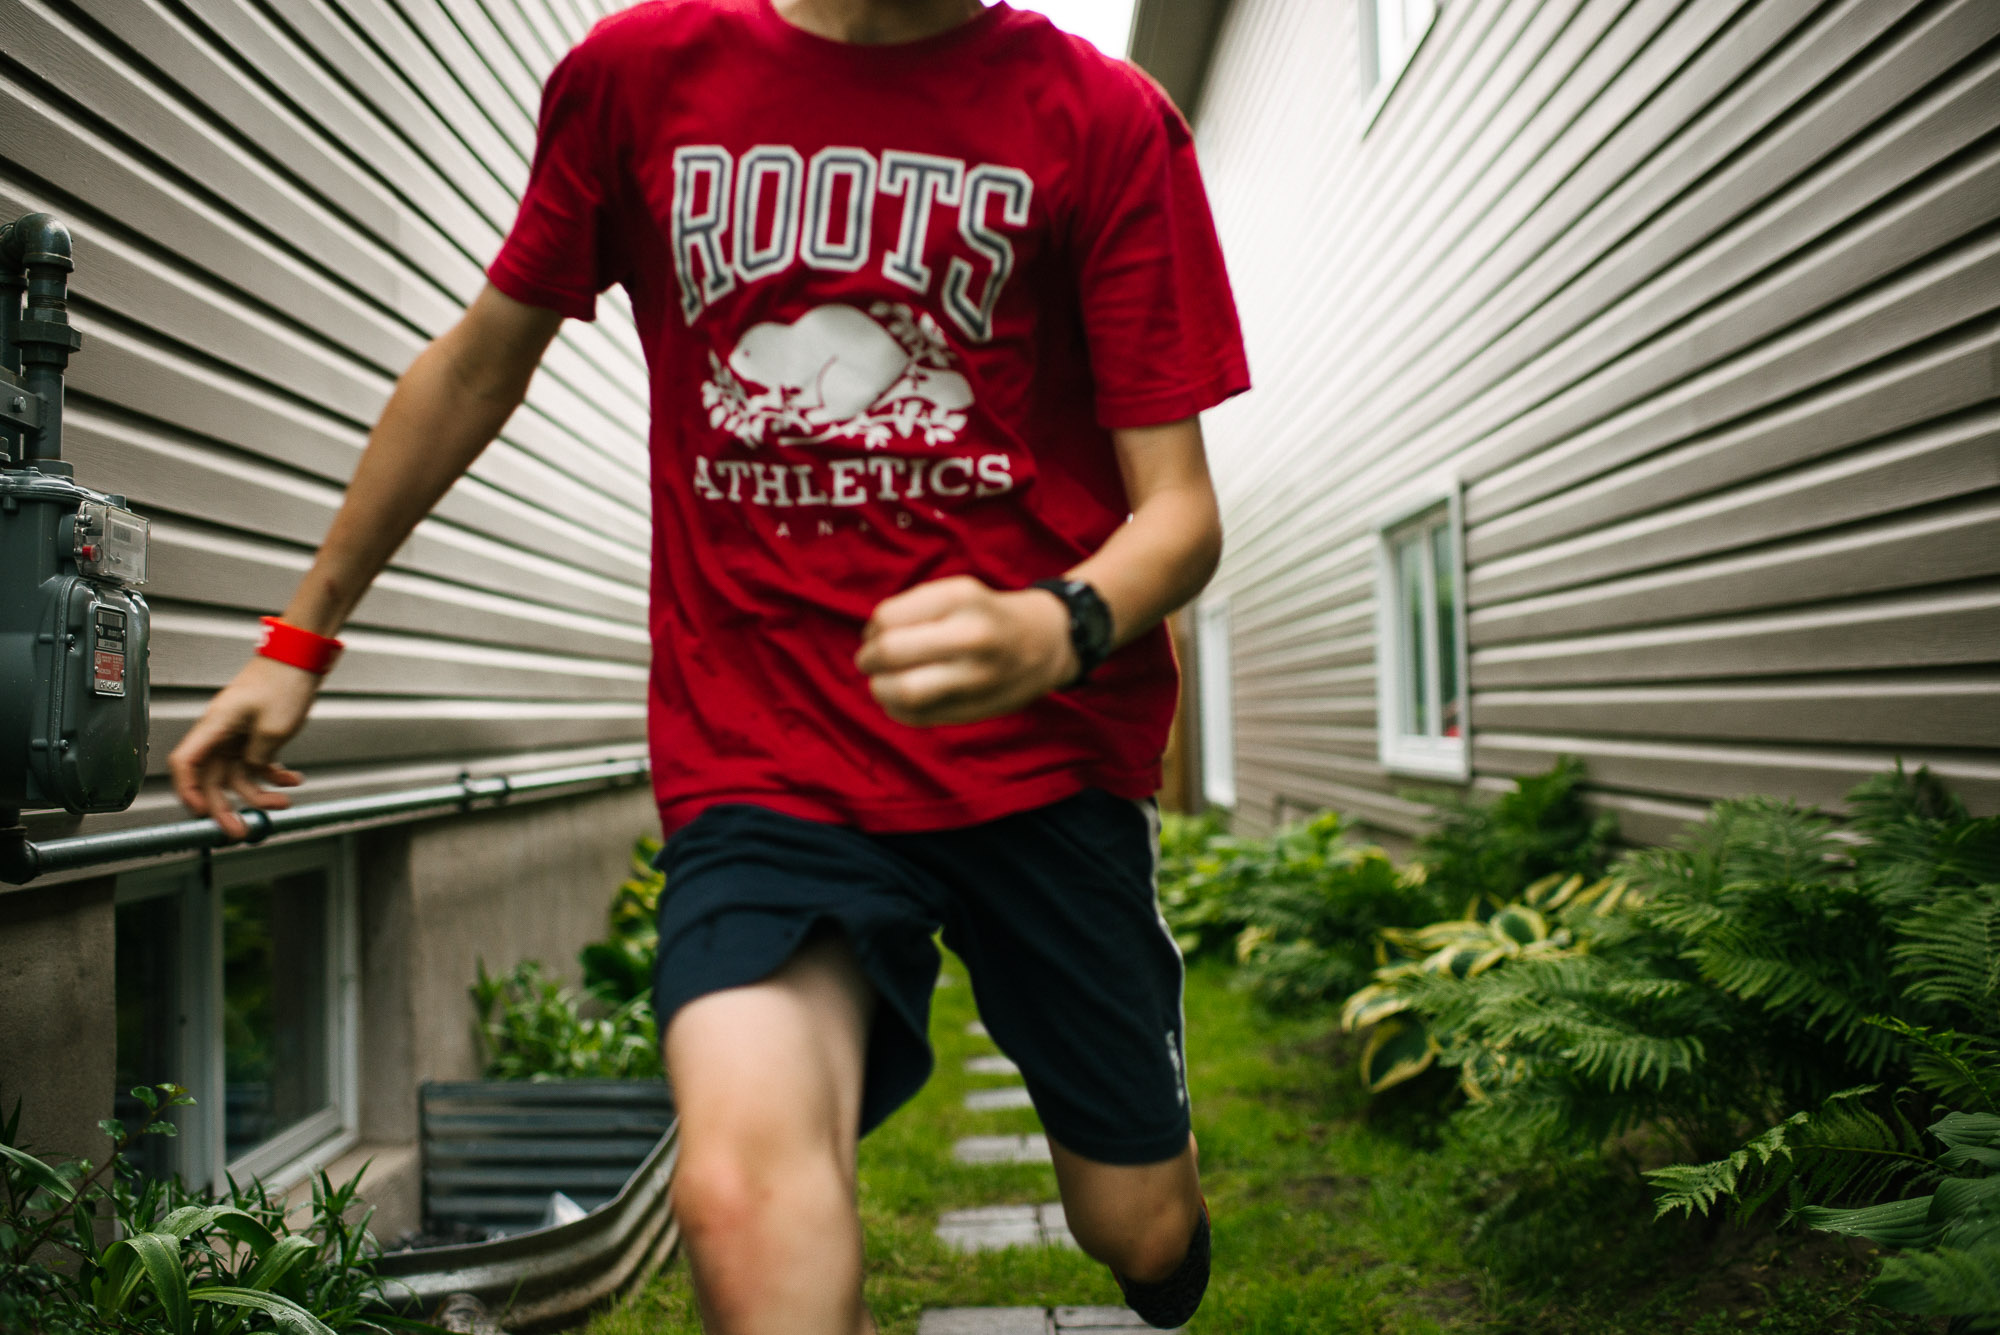 boy with red shirt runs toward camera